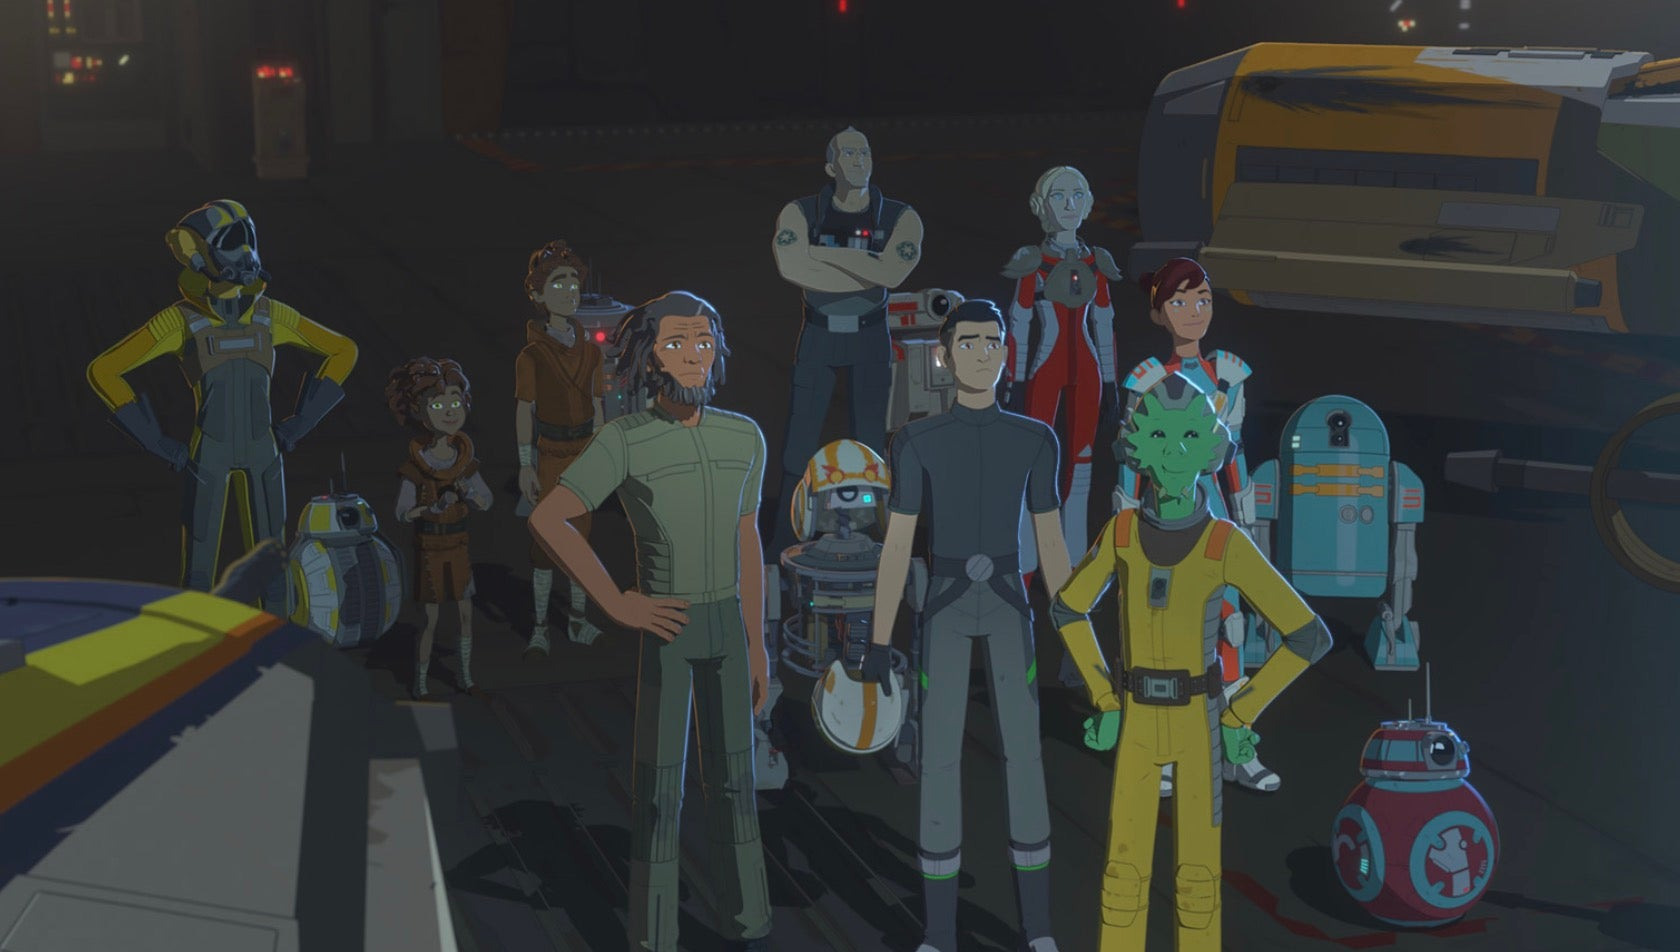 The Star Wars Resistance Season 2 Premiere Takes Place Almost Entirely In Zero Gravity